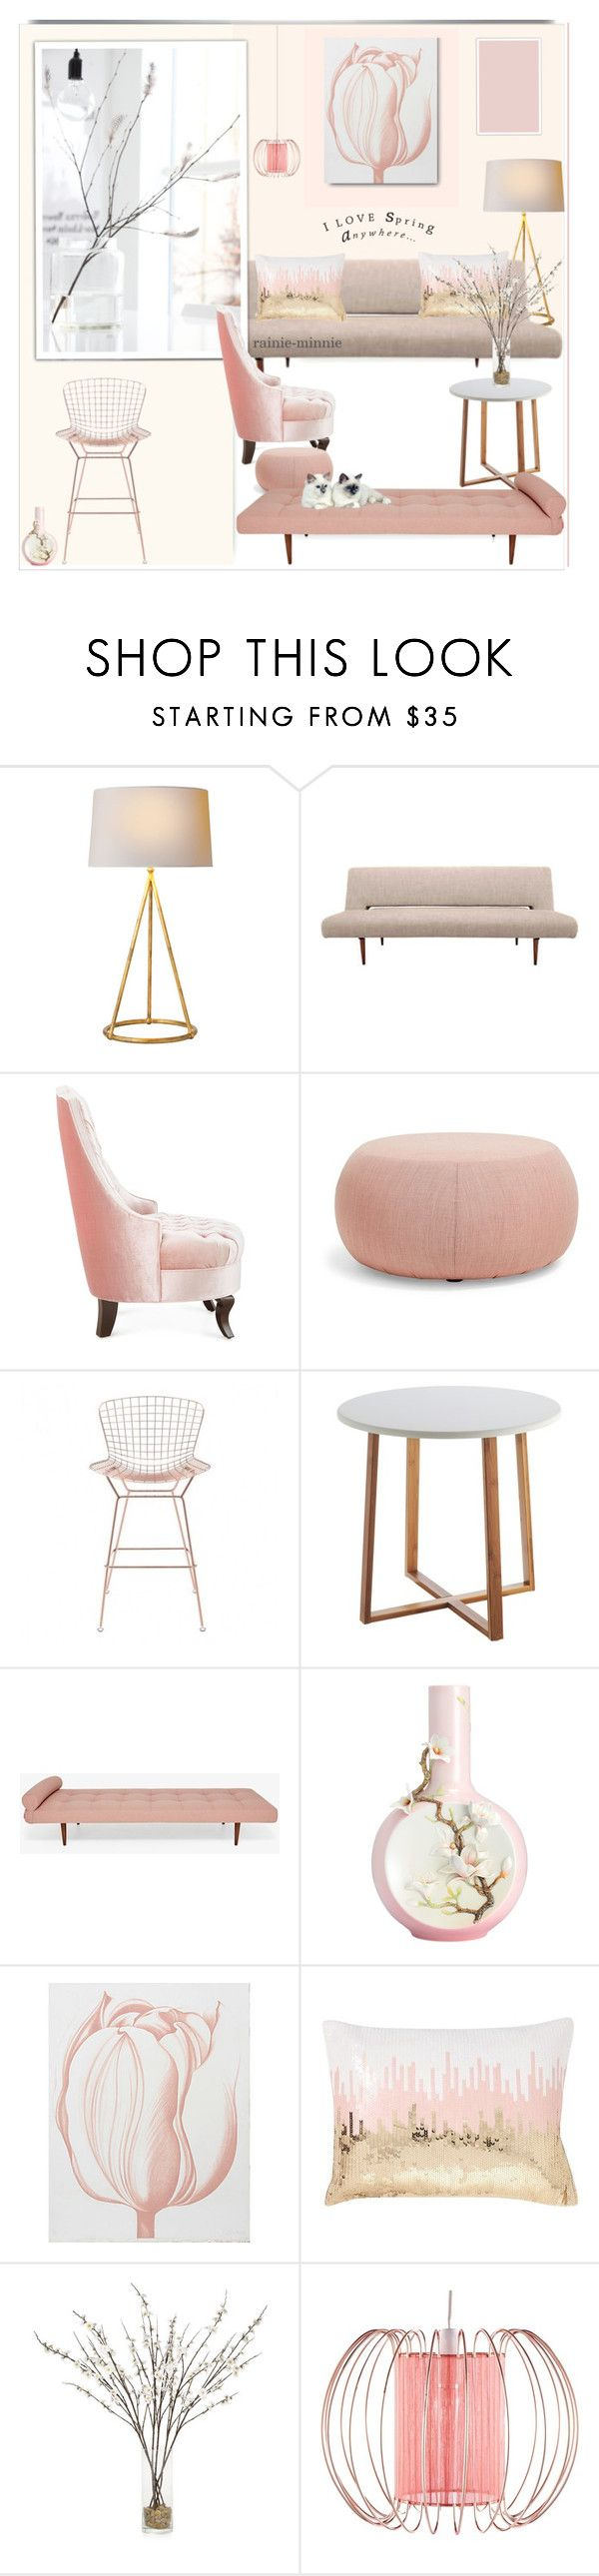 """Spring Time"" by rainie-minnie ❤ liked on Polyvore featuring interior, interiors, interior design, home, home decor, interior decorating, Haute House, Arper, Zuo and Franz Collection"